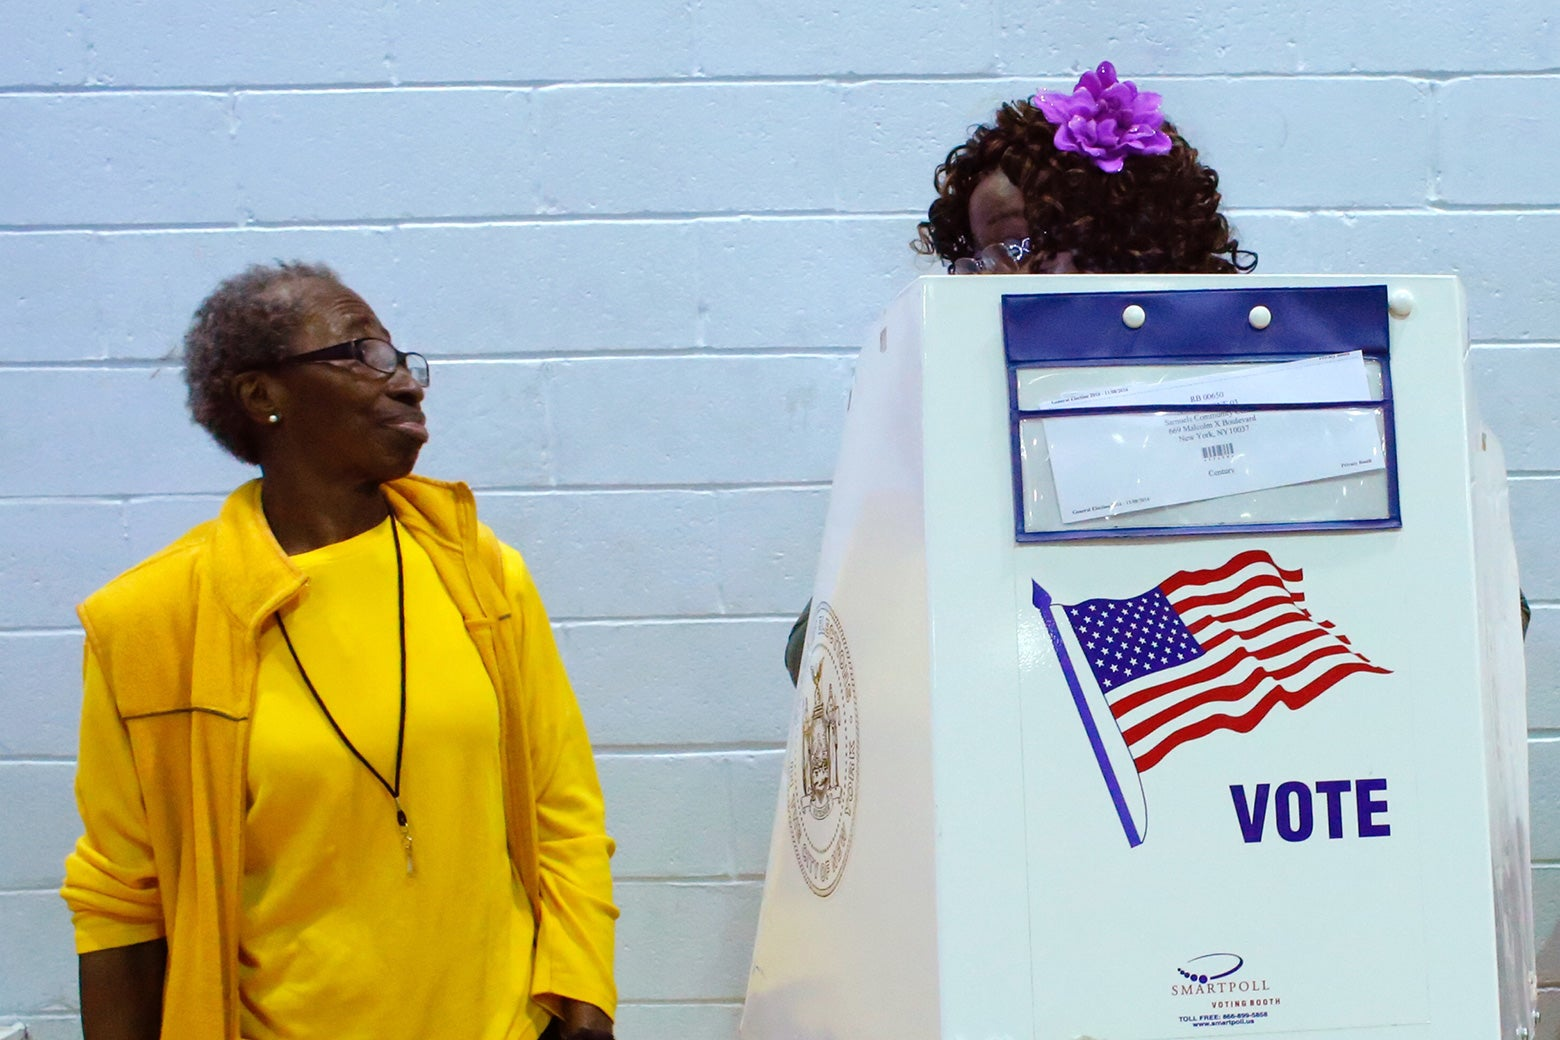 A voter asks an election worker a question as she votes at Samuels Community Center in the presidential election November 8, 2016 in the Harlem neighborhood of New York City.